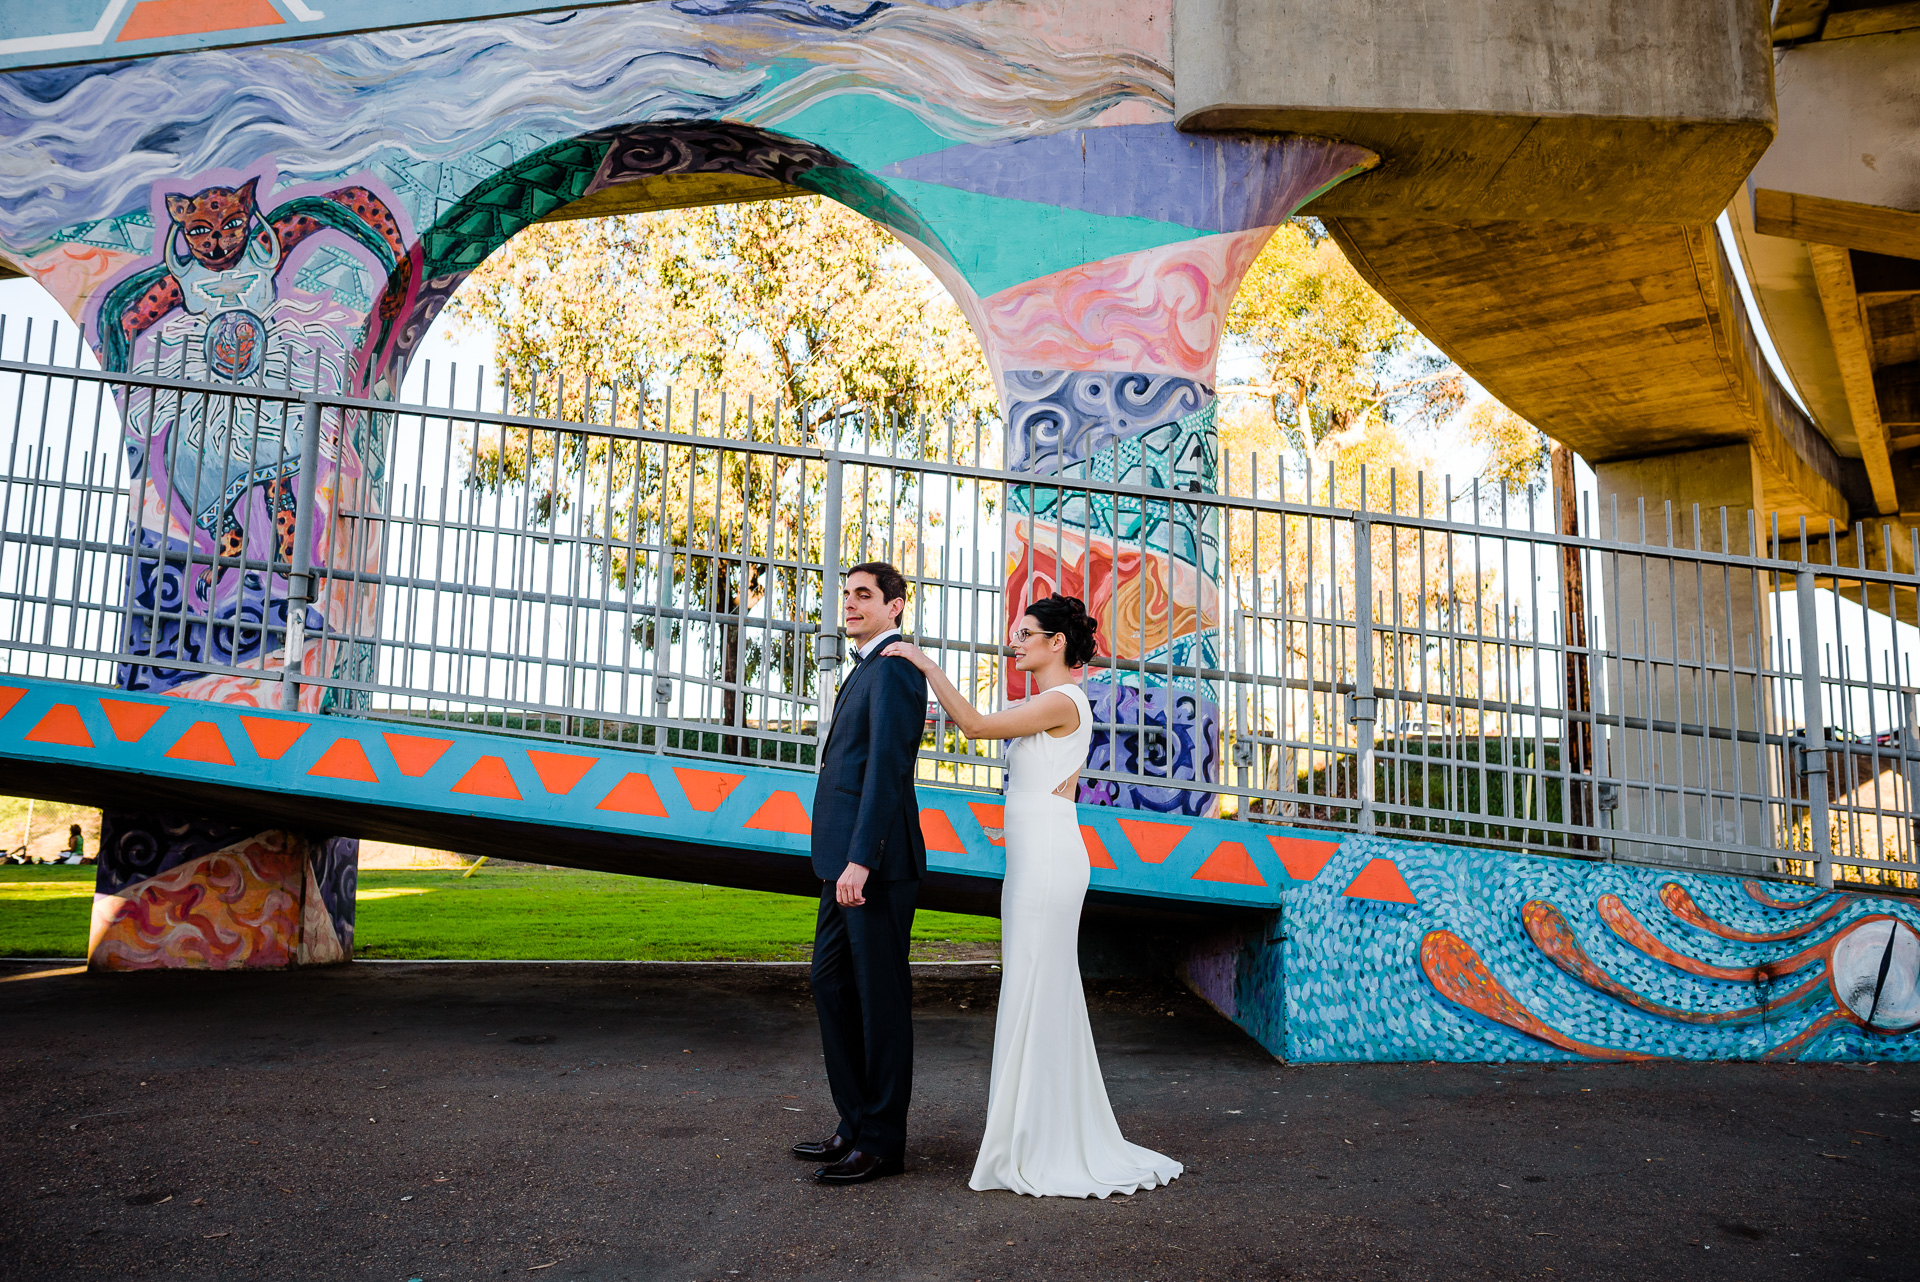 12.29.17 - Michelle and Tommaso Wedding - San Diego Courthouse -  Paul Douda Photography - 004.jpg